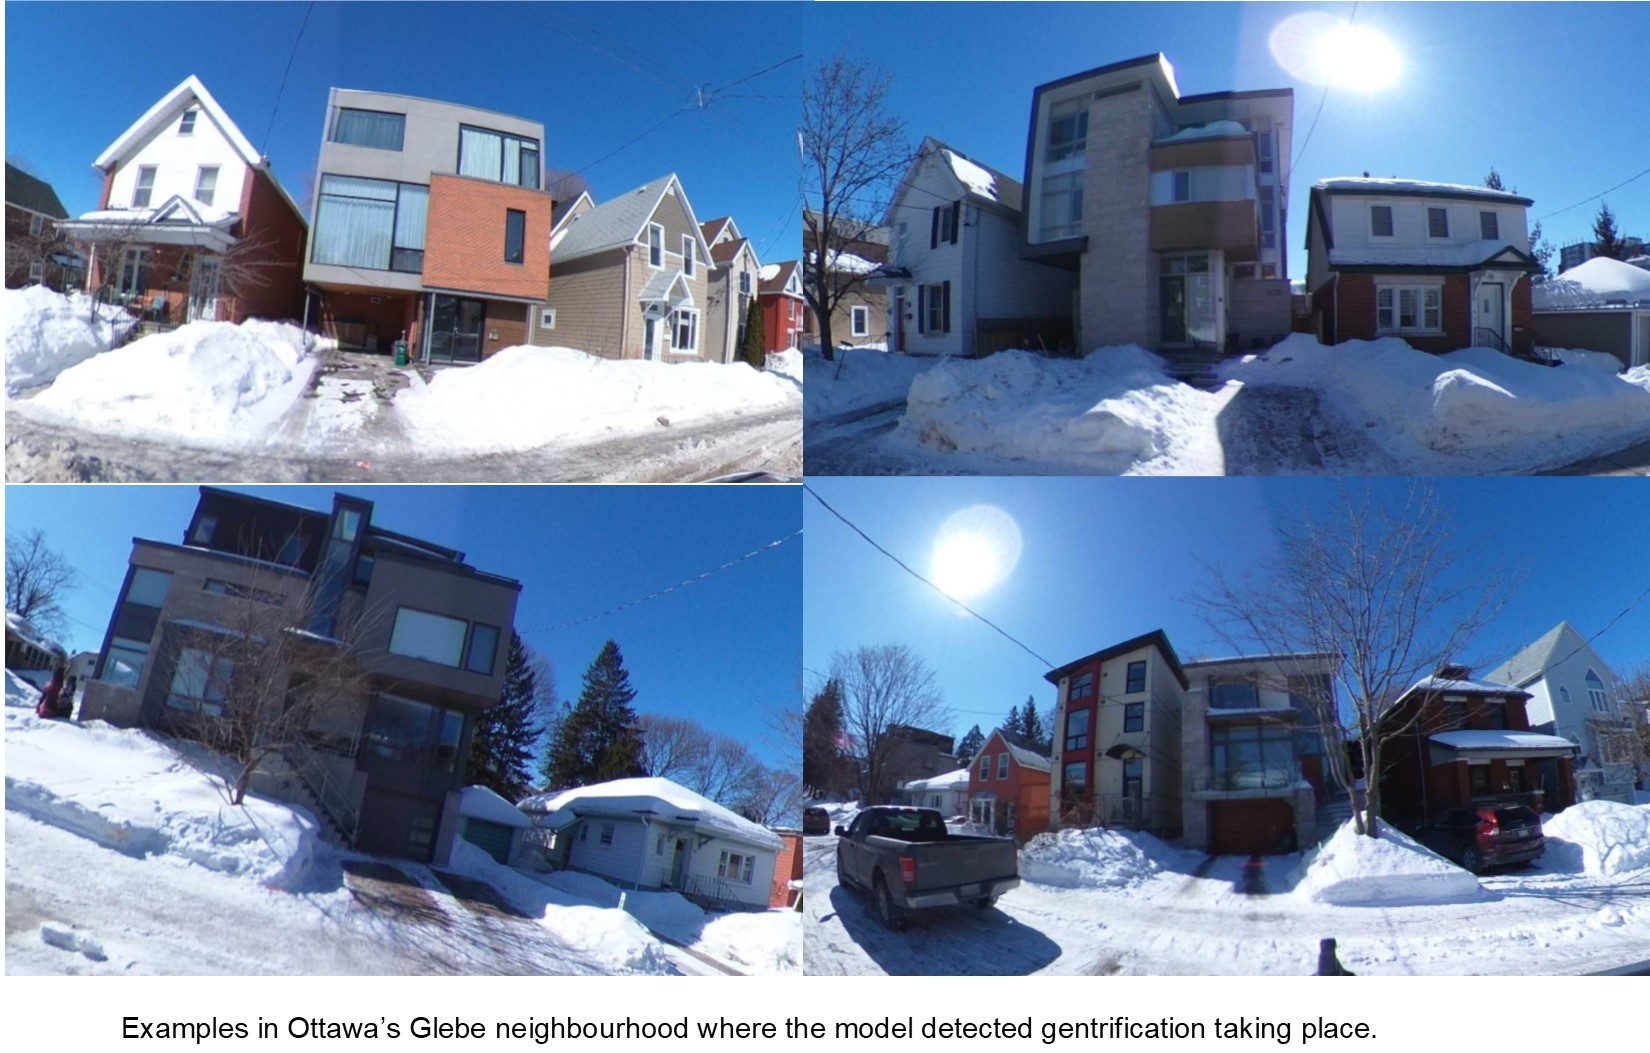 Examples in Ottawa's Glebe neighbourhood where the model detected gentrification taking place.